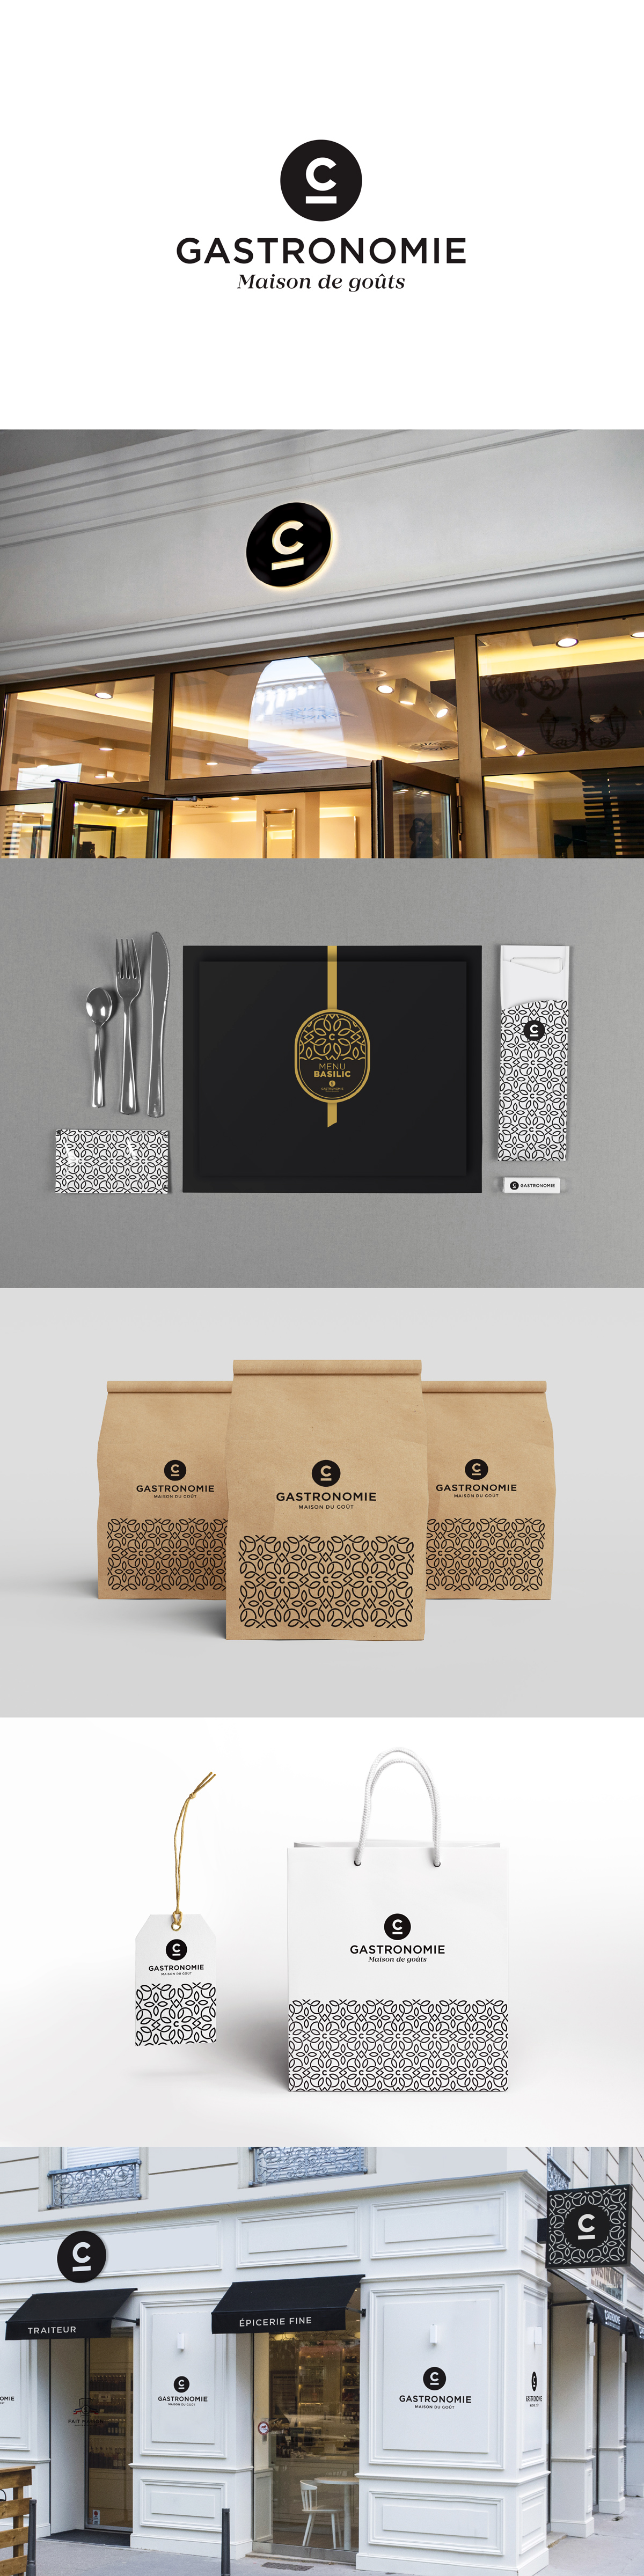 C-Gastronomie-Food-Graphic-Design-©-Studio-Cosmos